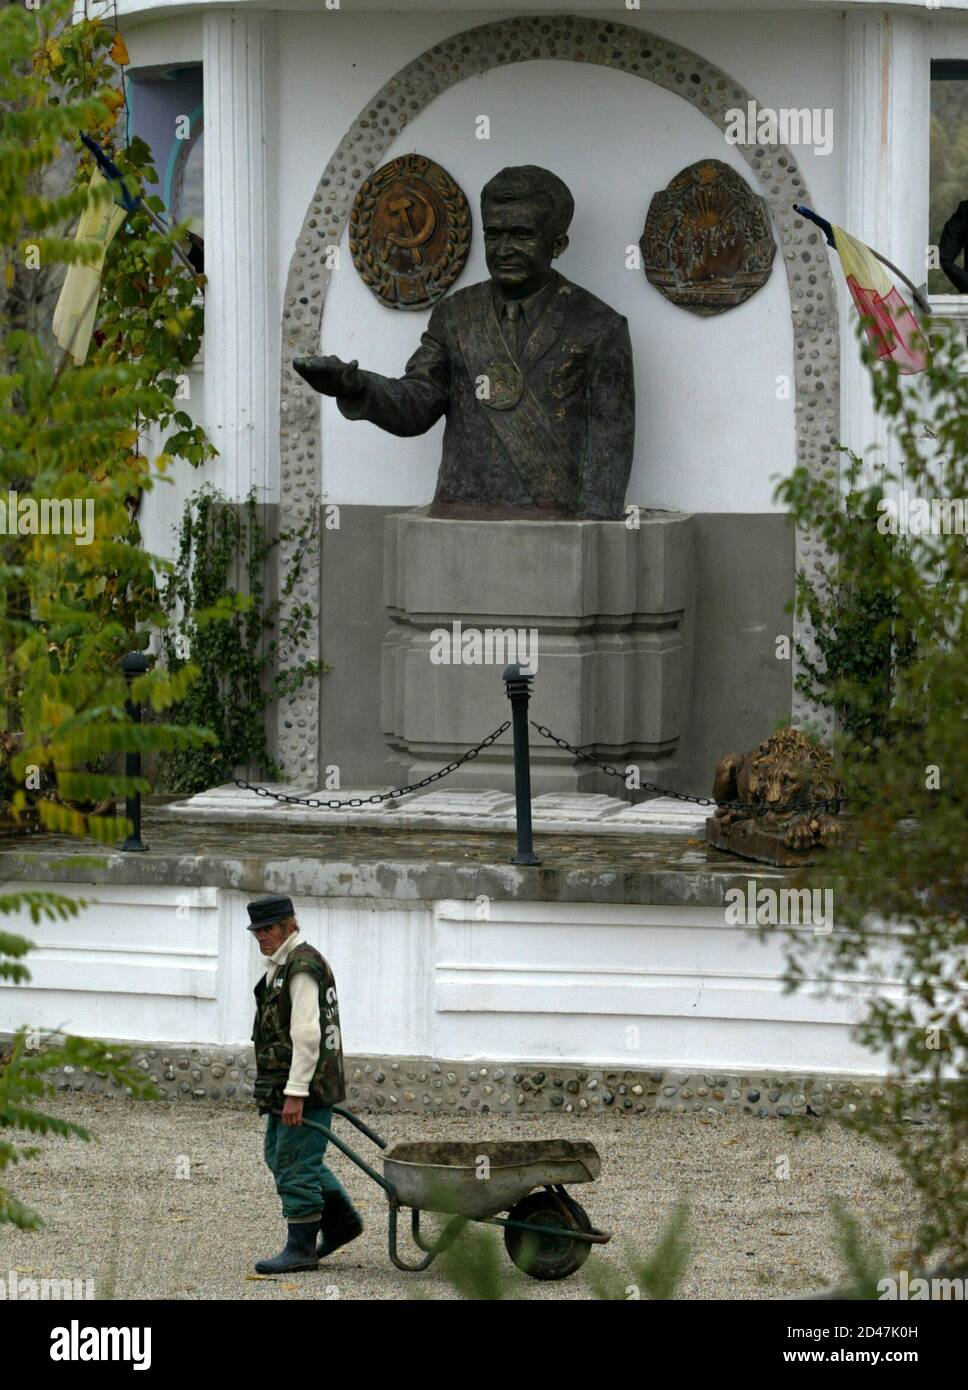 - PHOTO TAKEN 10NOV04 - A workman carries a cart past a monument to Romania's late Stalinist dictator Nicolae Ceausescu in a private park dedicated to the country's communist past near Craiova (250km west of Bucharest) in this November 10 file picture. Many in the impoverished countryside are nostalgic of Ceausescu ahead of Sunday's elections, saying they miss the job security they enjoyed during his time, and are expected to back the ruling socialists, successors of his communist party. Stock Photo